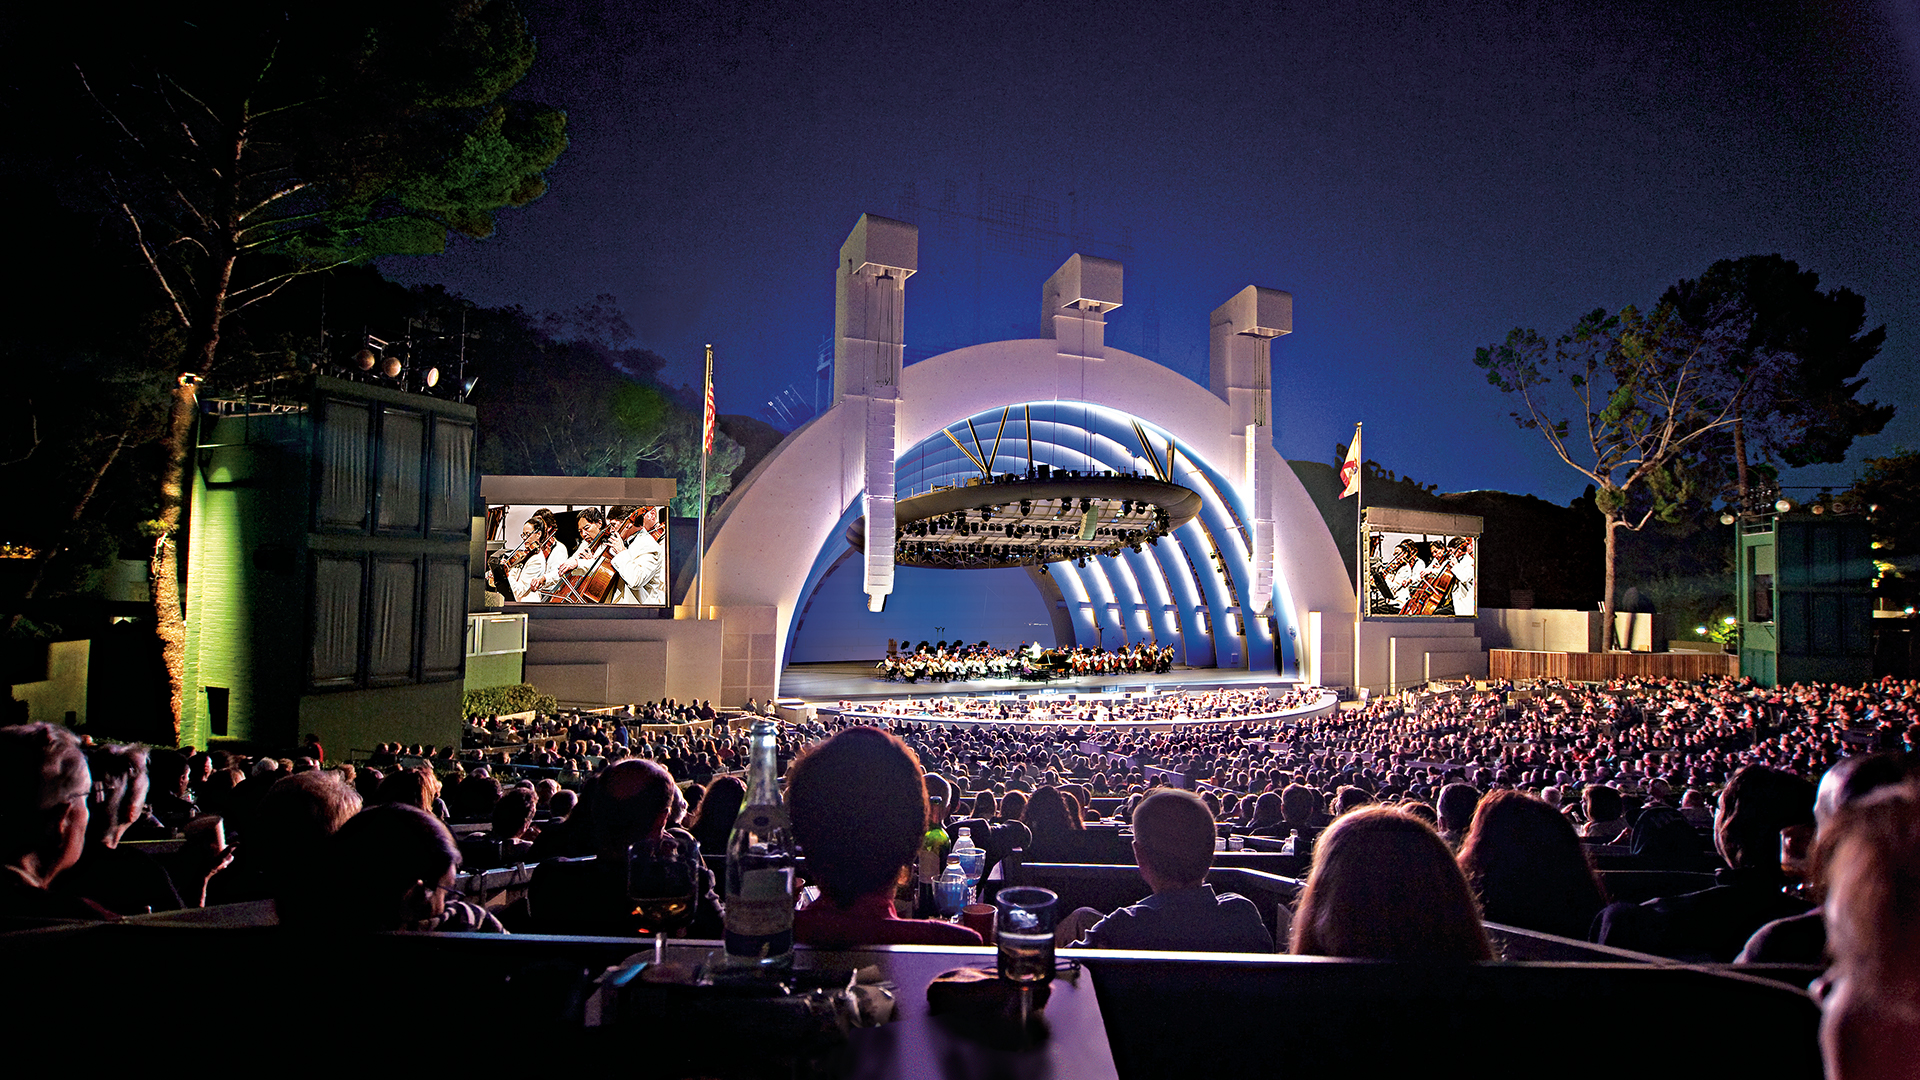 The Hollywood Bowl >> When The Stars Come Out At The Hollywood Bowl Journal Teller